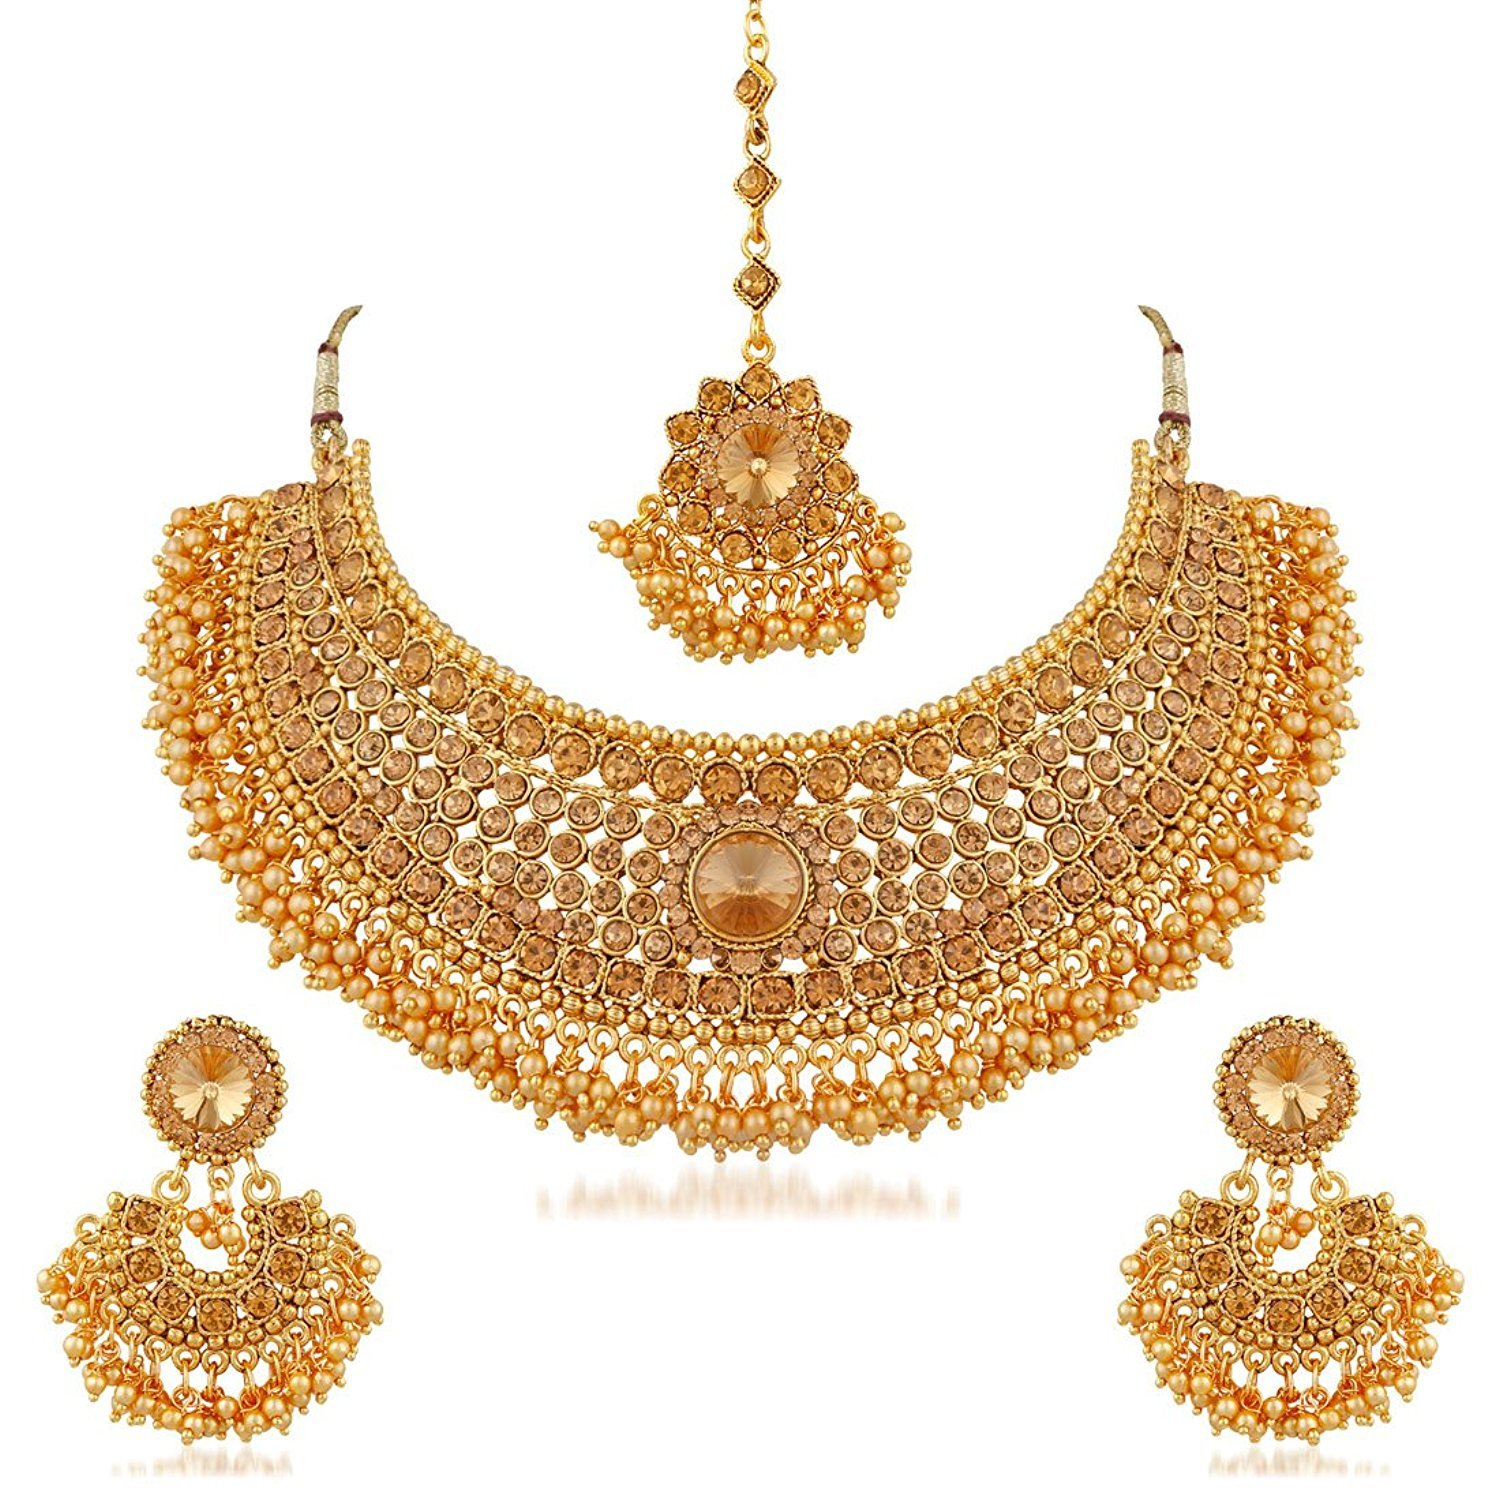 online string jalebi plated gold sets set stylish temple buy necklace neckace women necklaces collections sukkhi jewellery for